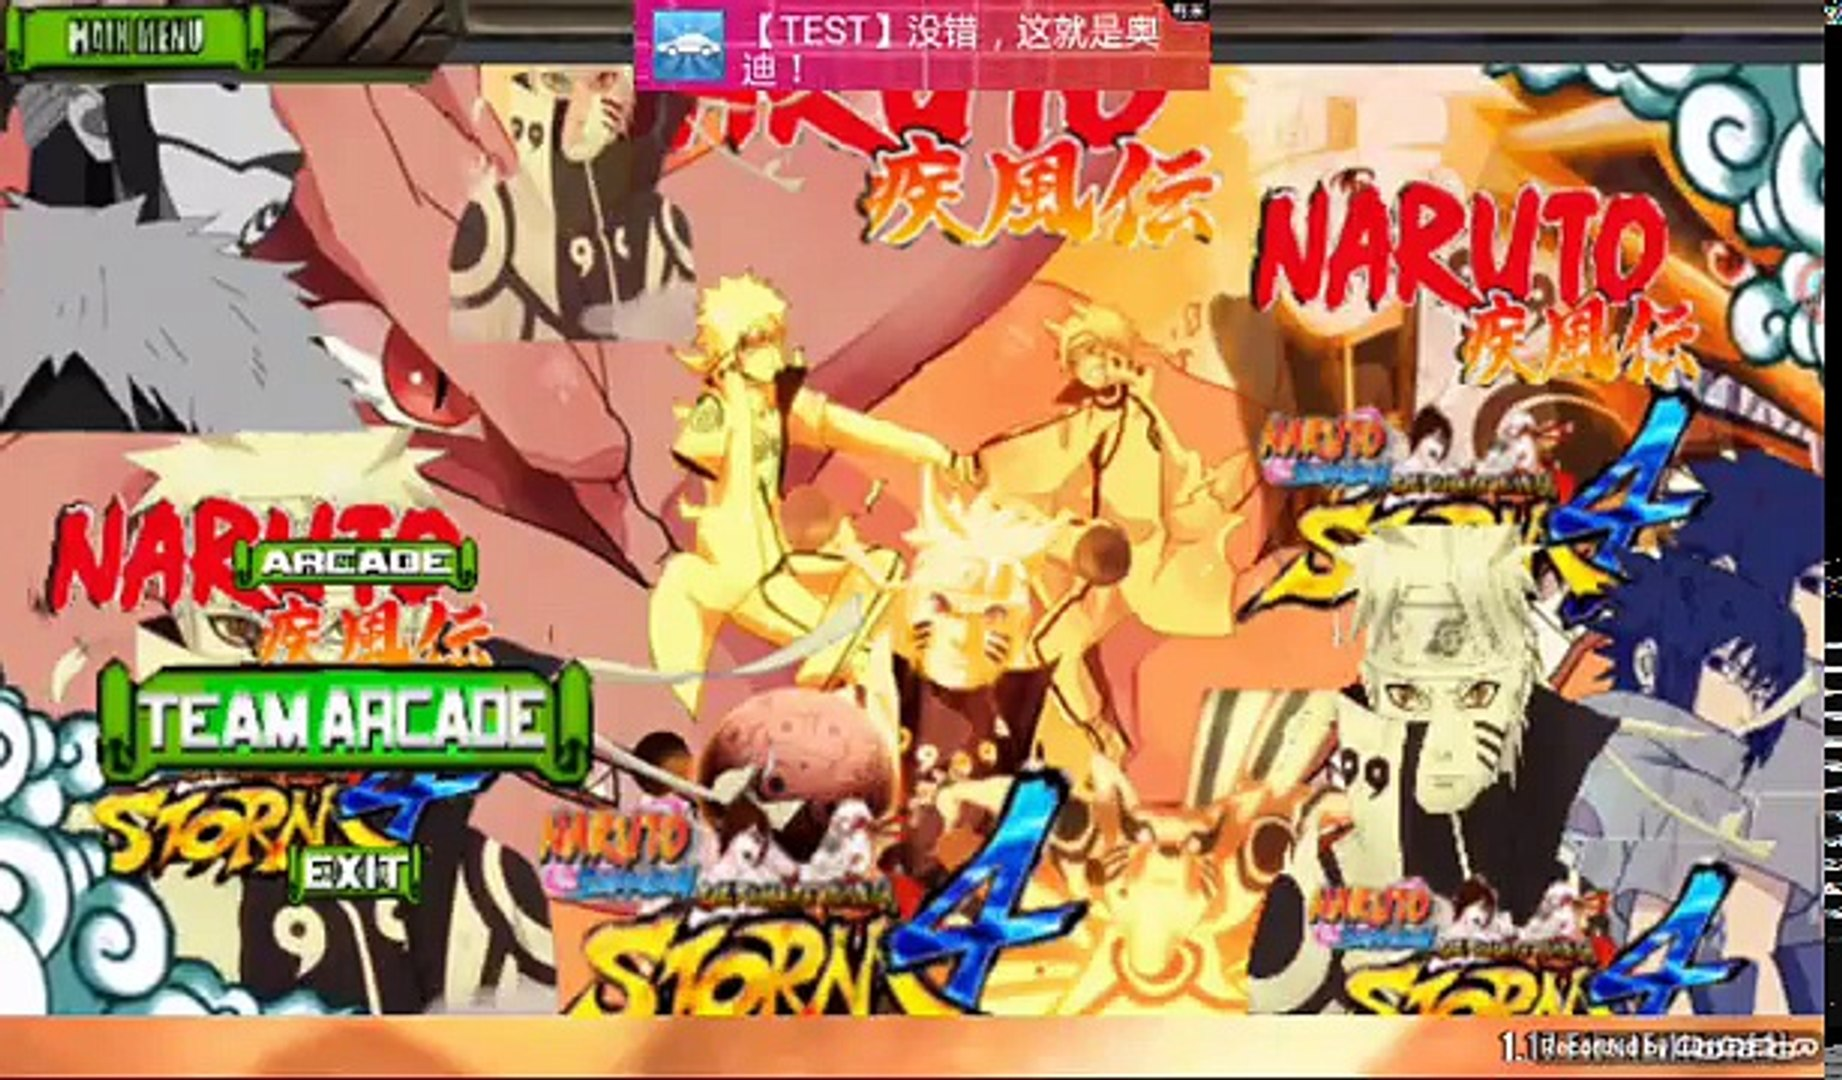 Naruto Senki Final Mod Apk Download Free - iTechBlogs co